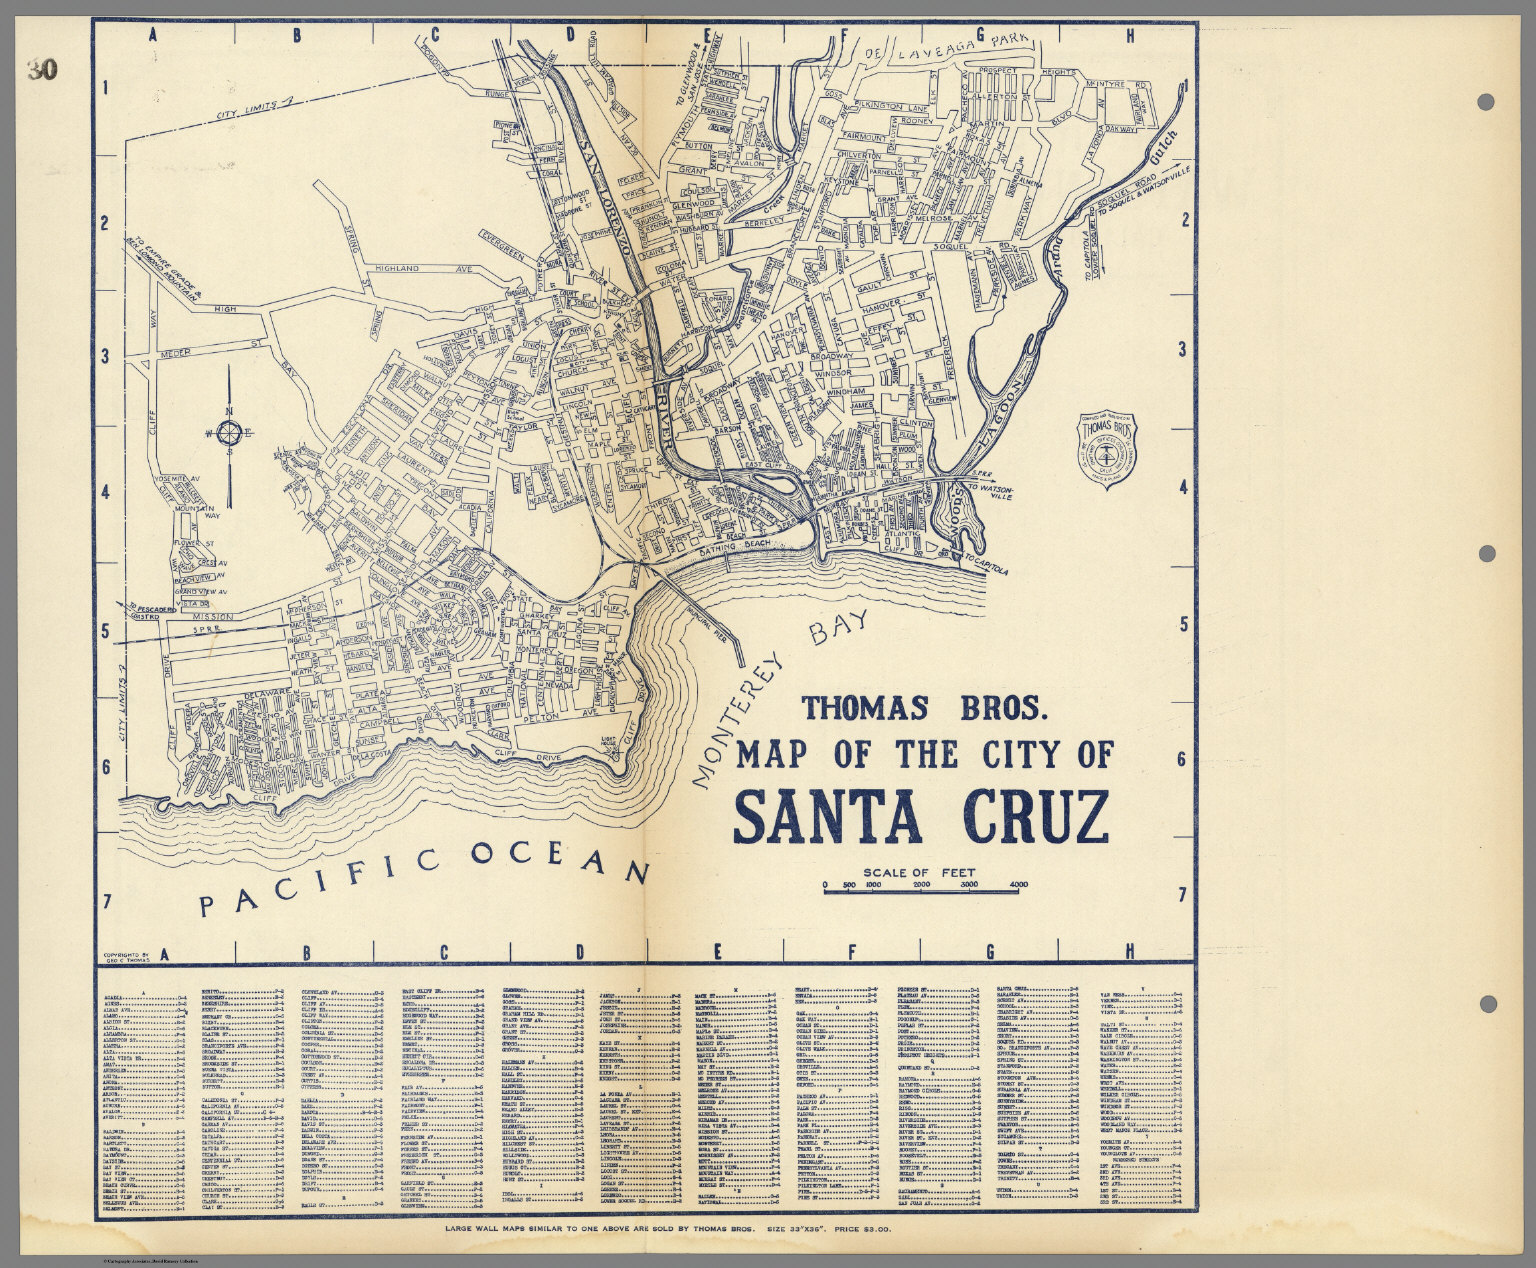 Thomas Bros Map of the City of Santa Cruz California David